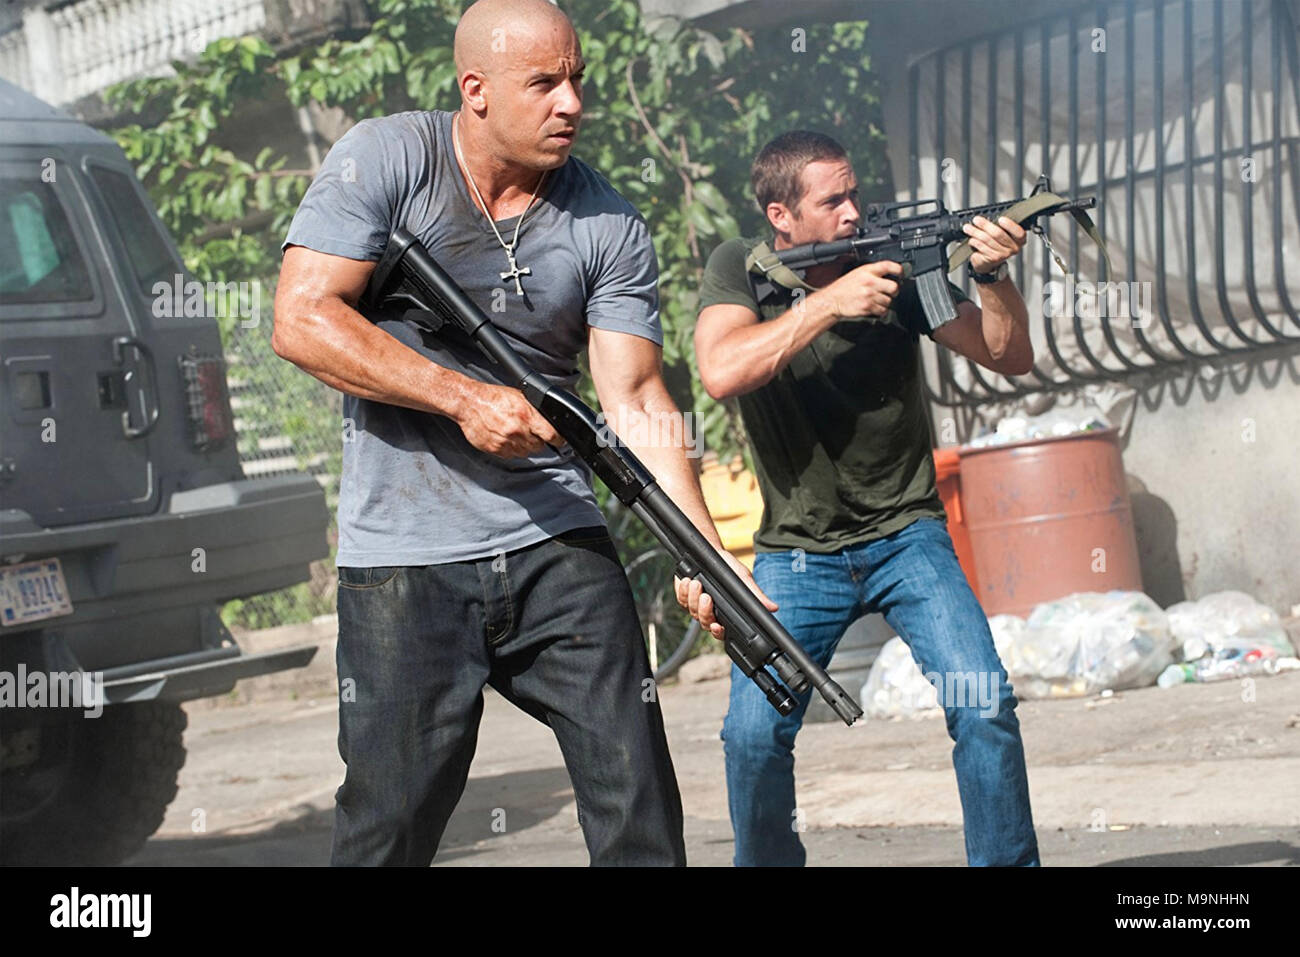 FAST AND FURIOUS 5 (aka Fast Five) 2011 Universal Pictures film with Vin Diesel at left and Paul Walker - Stock Image